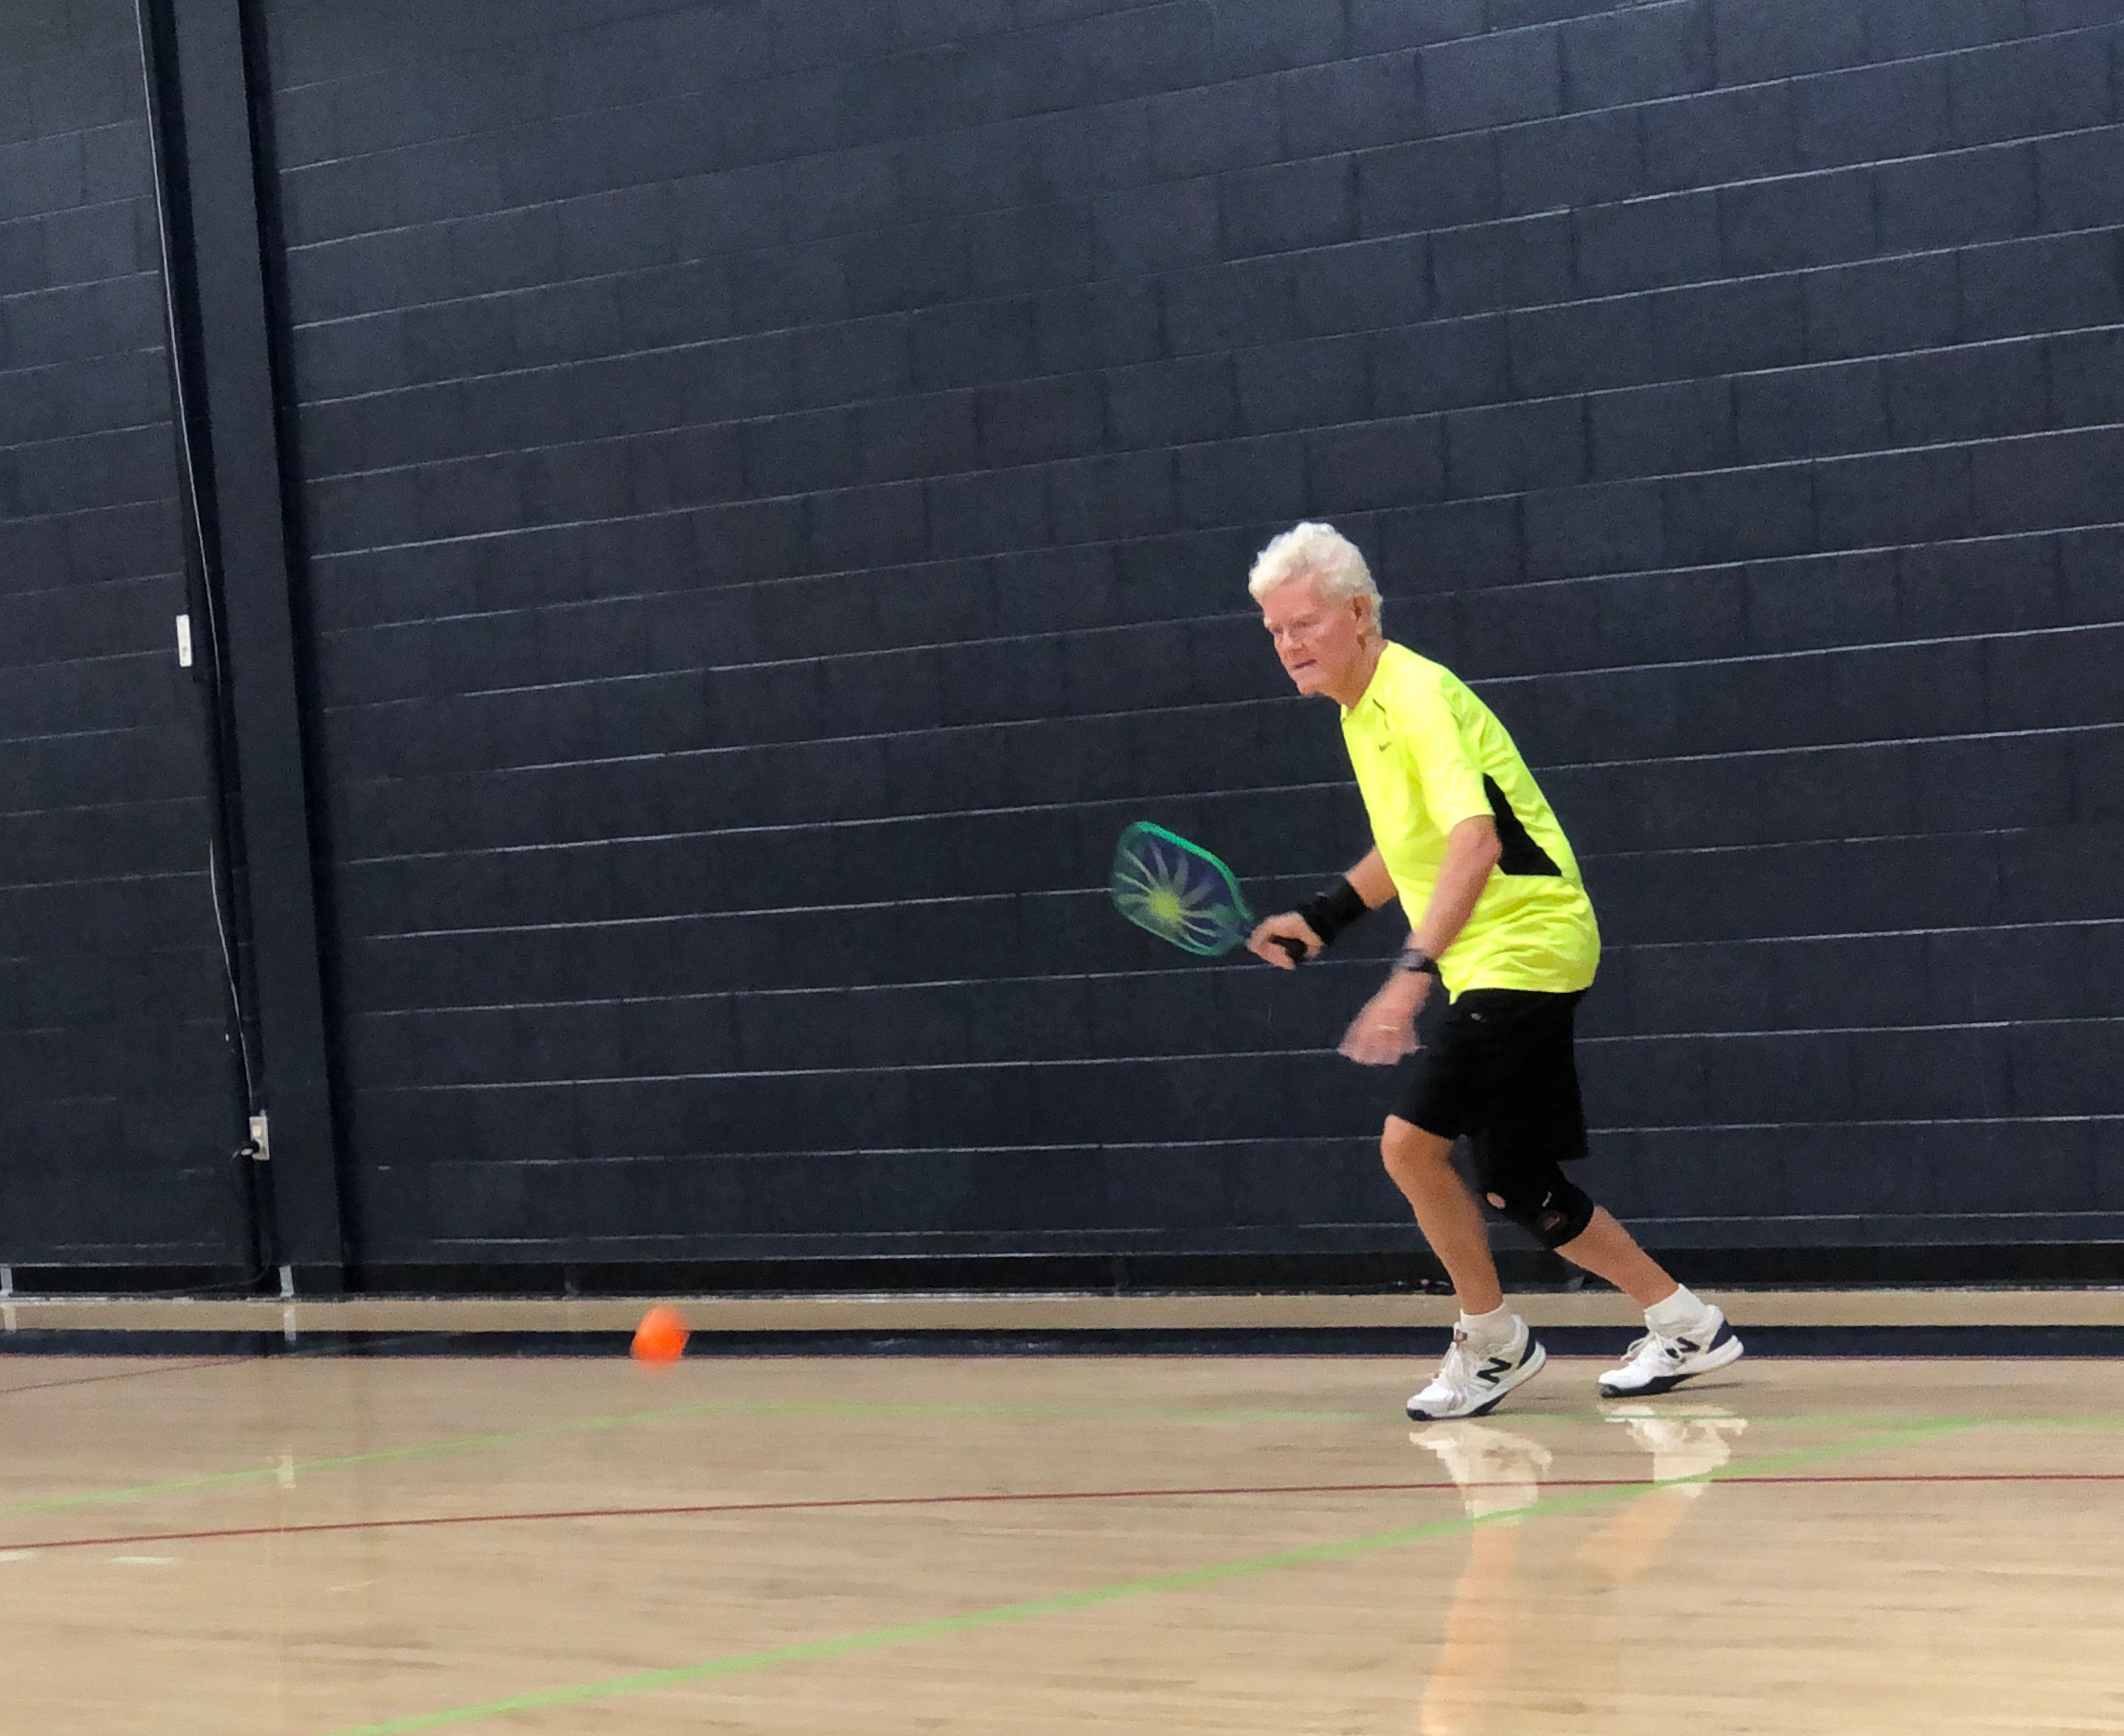 """Dick Johnson has earned the title of """"Pickleball Rocks Player of the Year."""""""